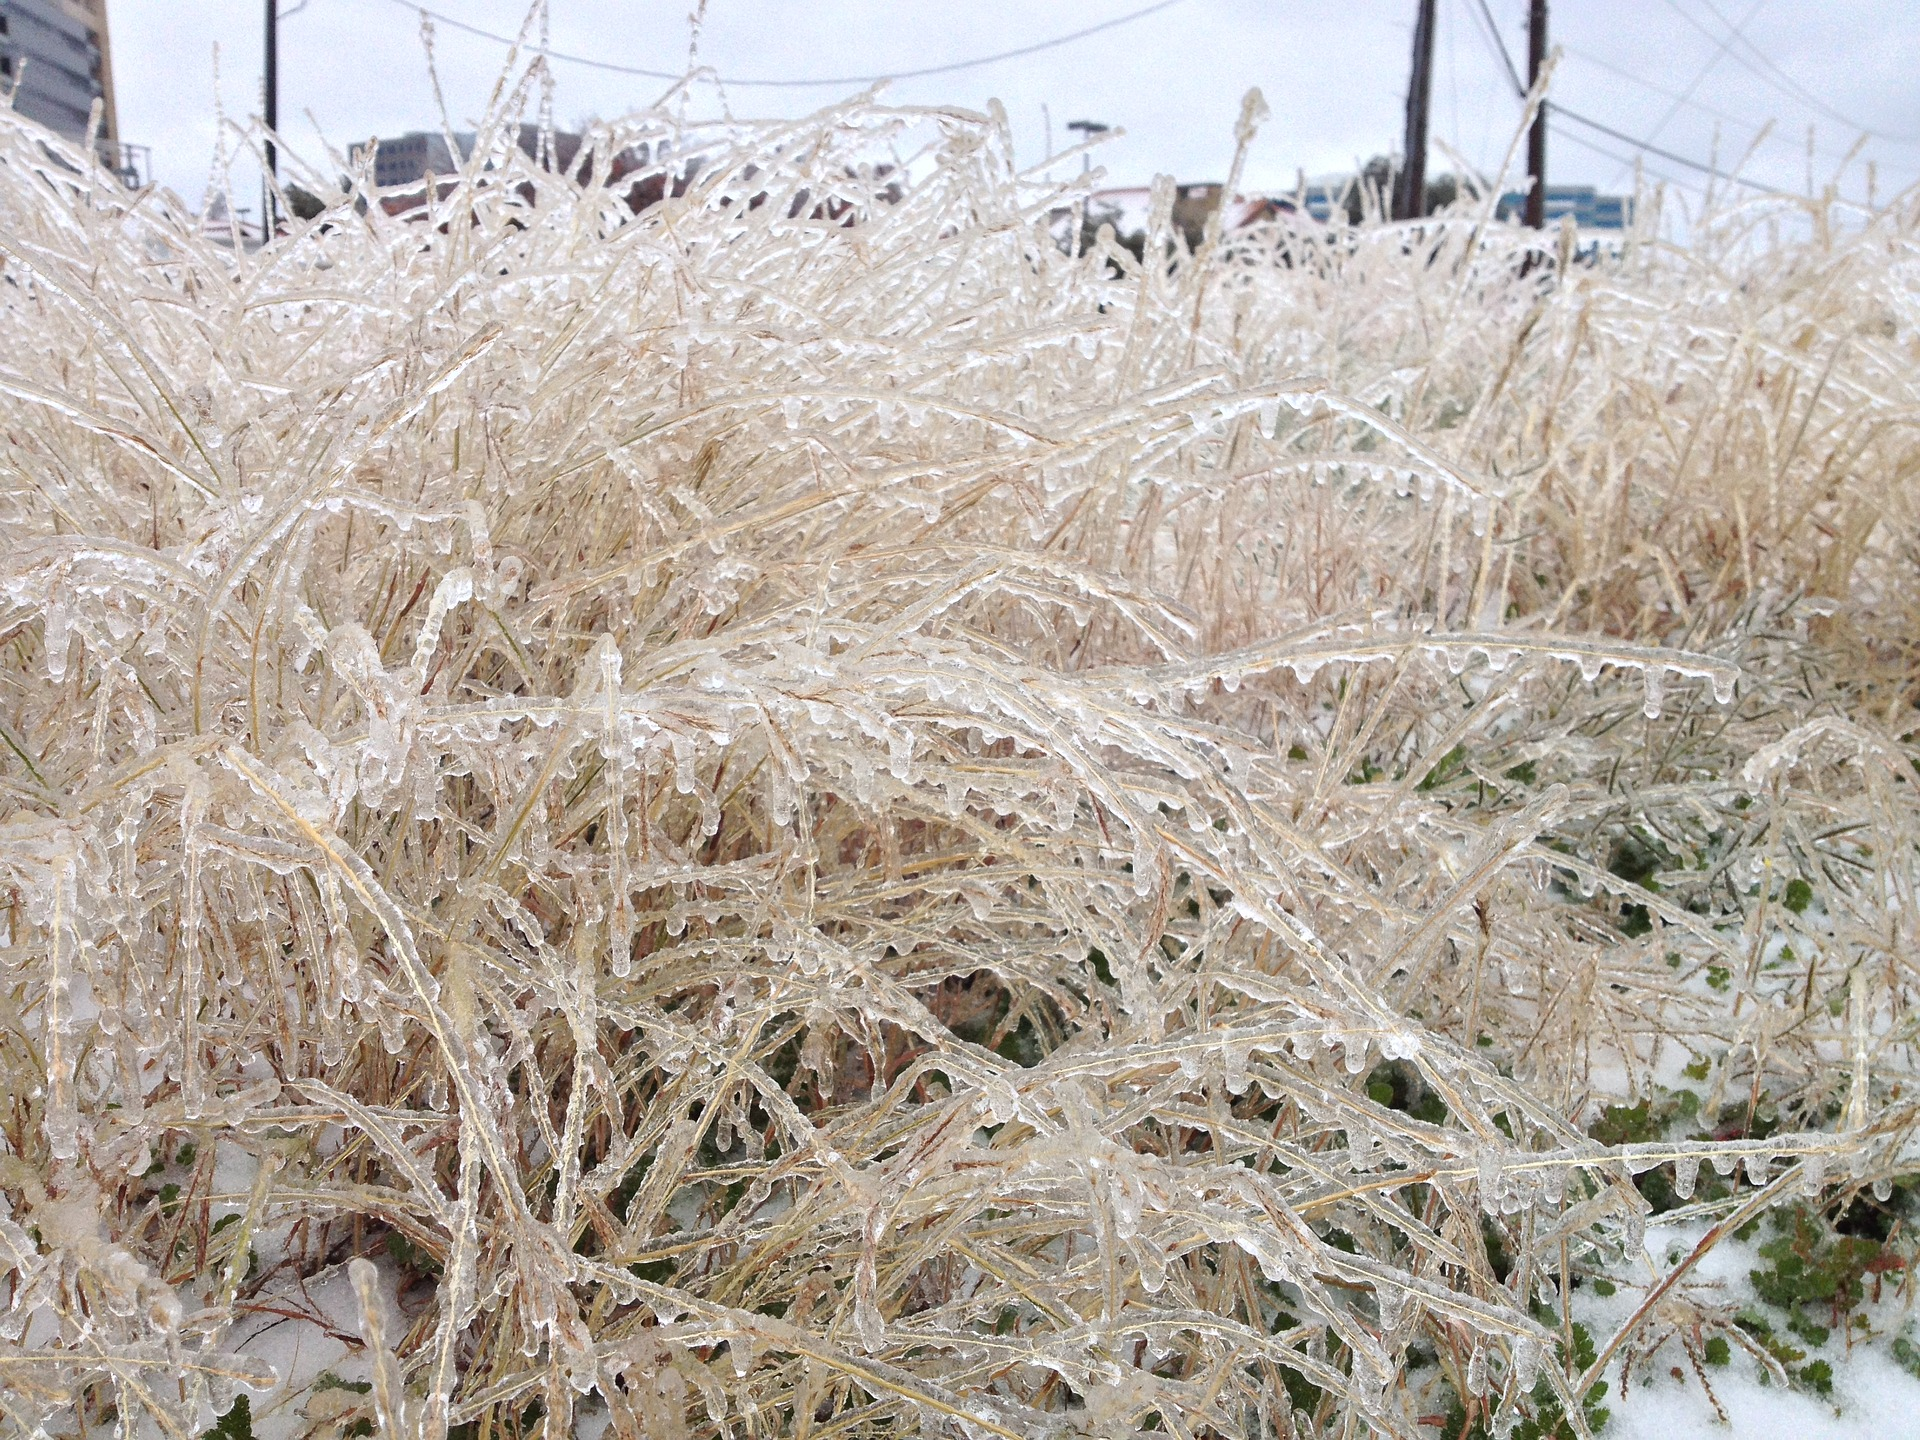 Frozen grasses after the February Texas ice storm. Image credit: M. Zane McClellan/Pixabay